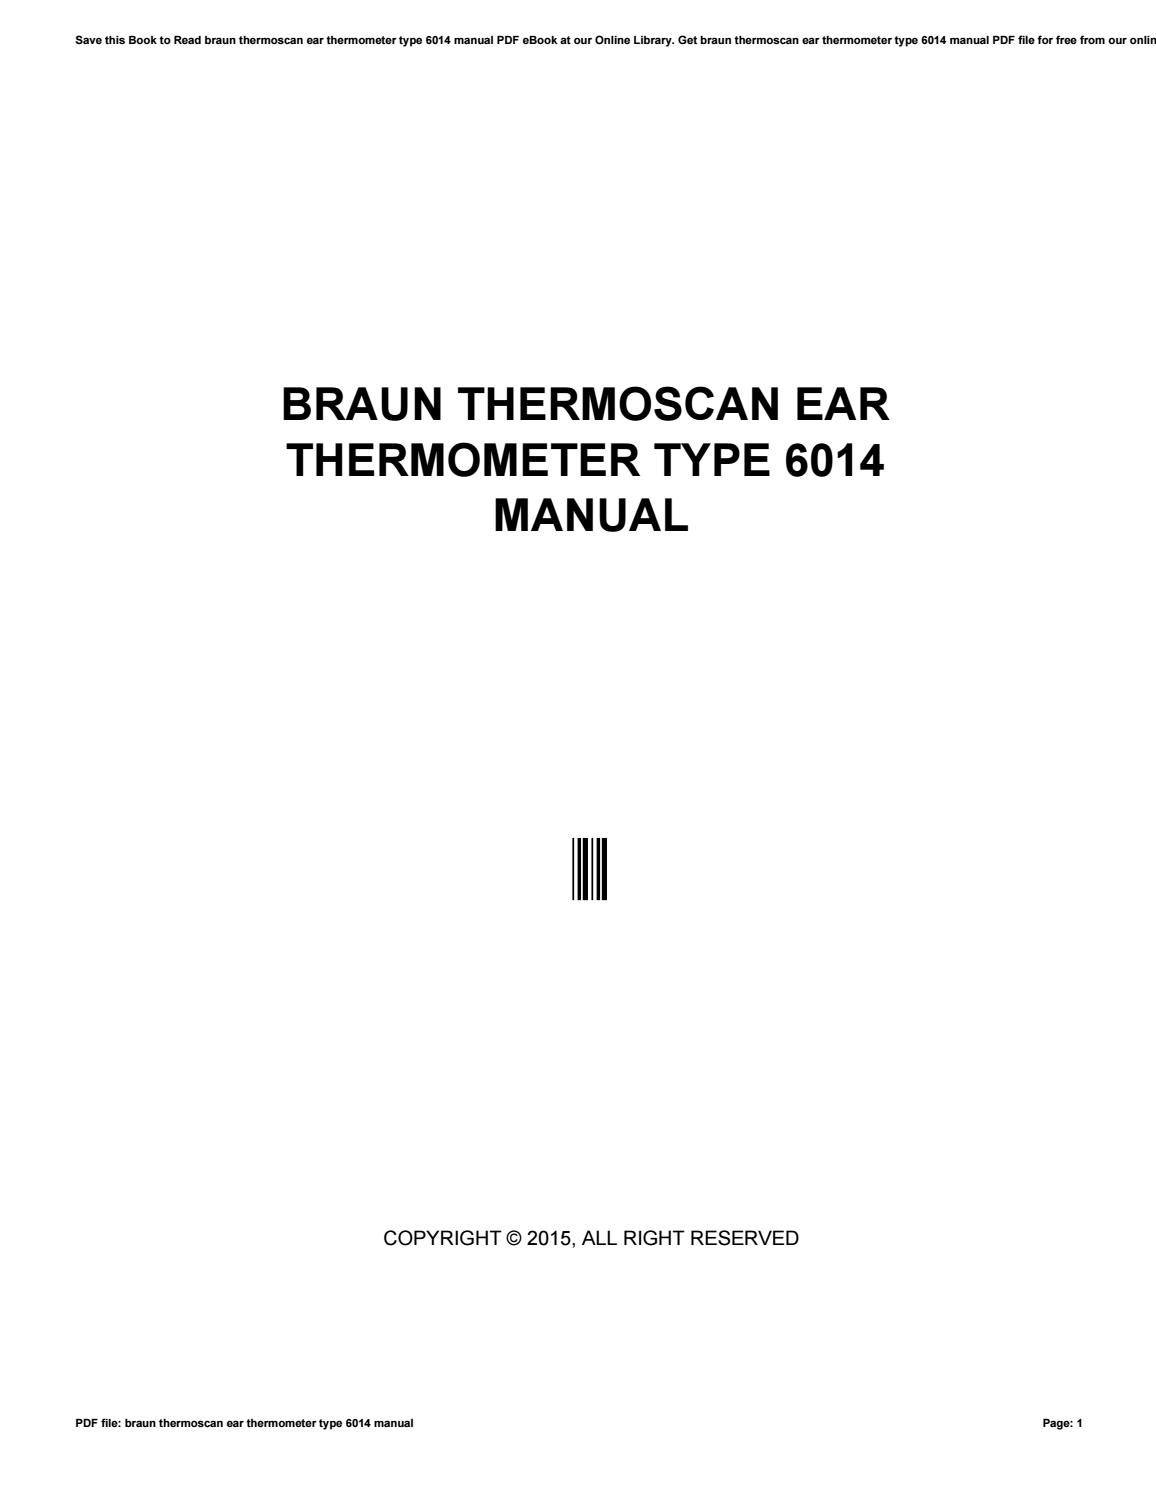 Braun thermoscan ear thermometer type 6022 manual